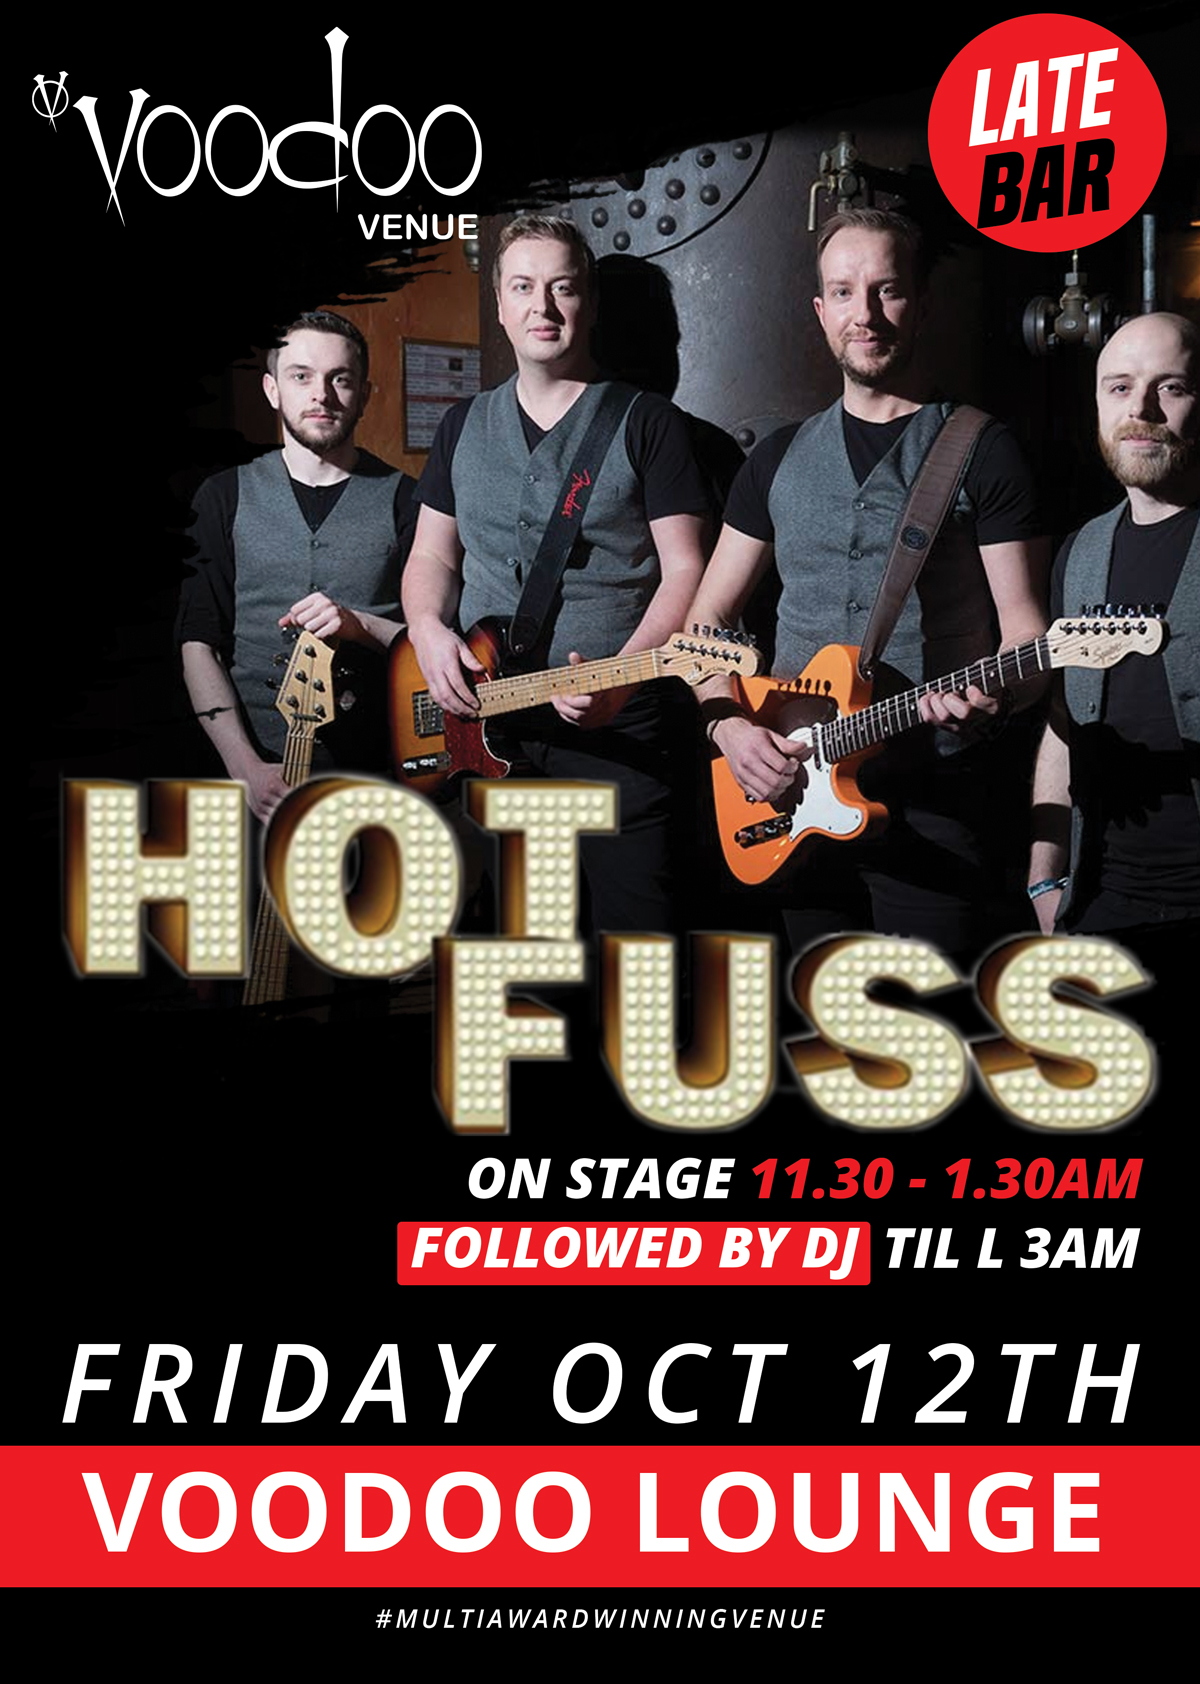 voodoo-venue---live-lounge-HOT-FUSS-BAND--fri-OCT-12-2018.jpg